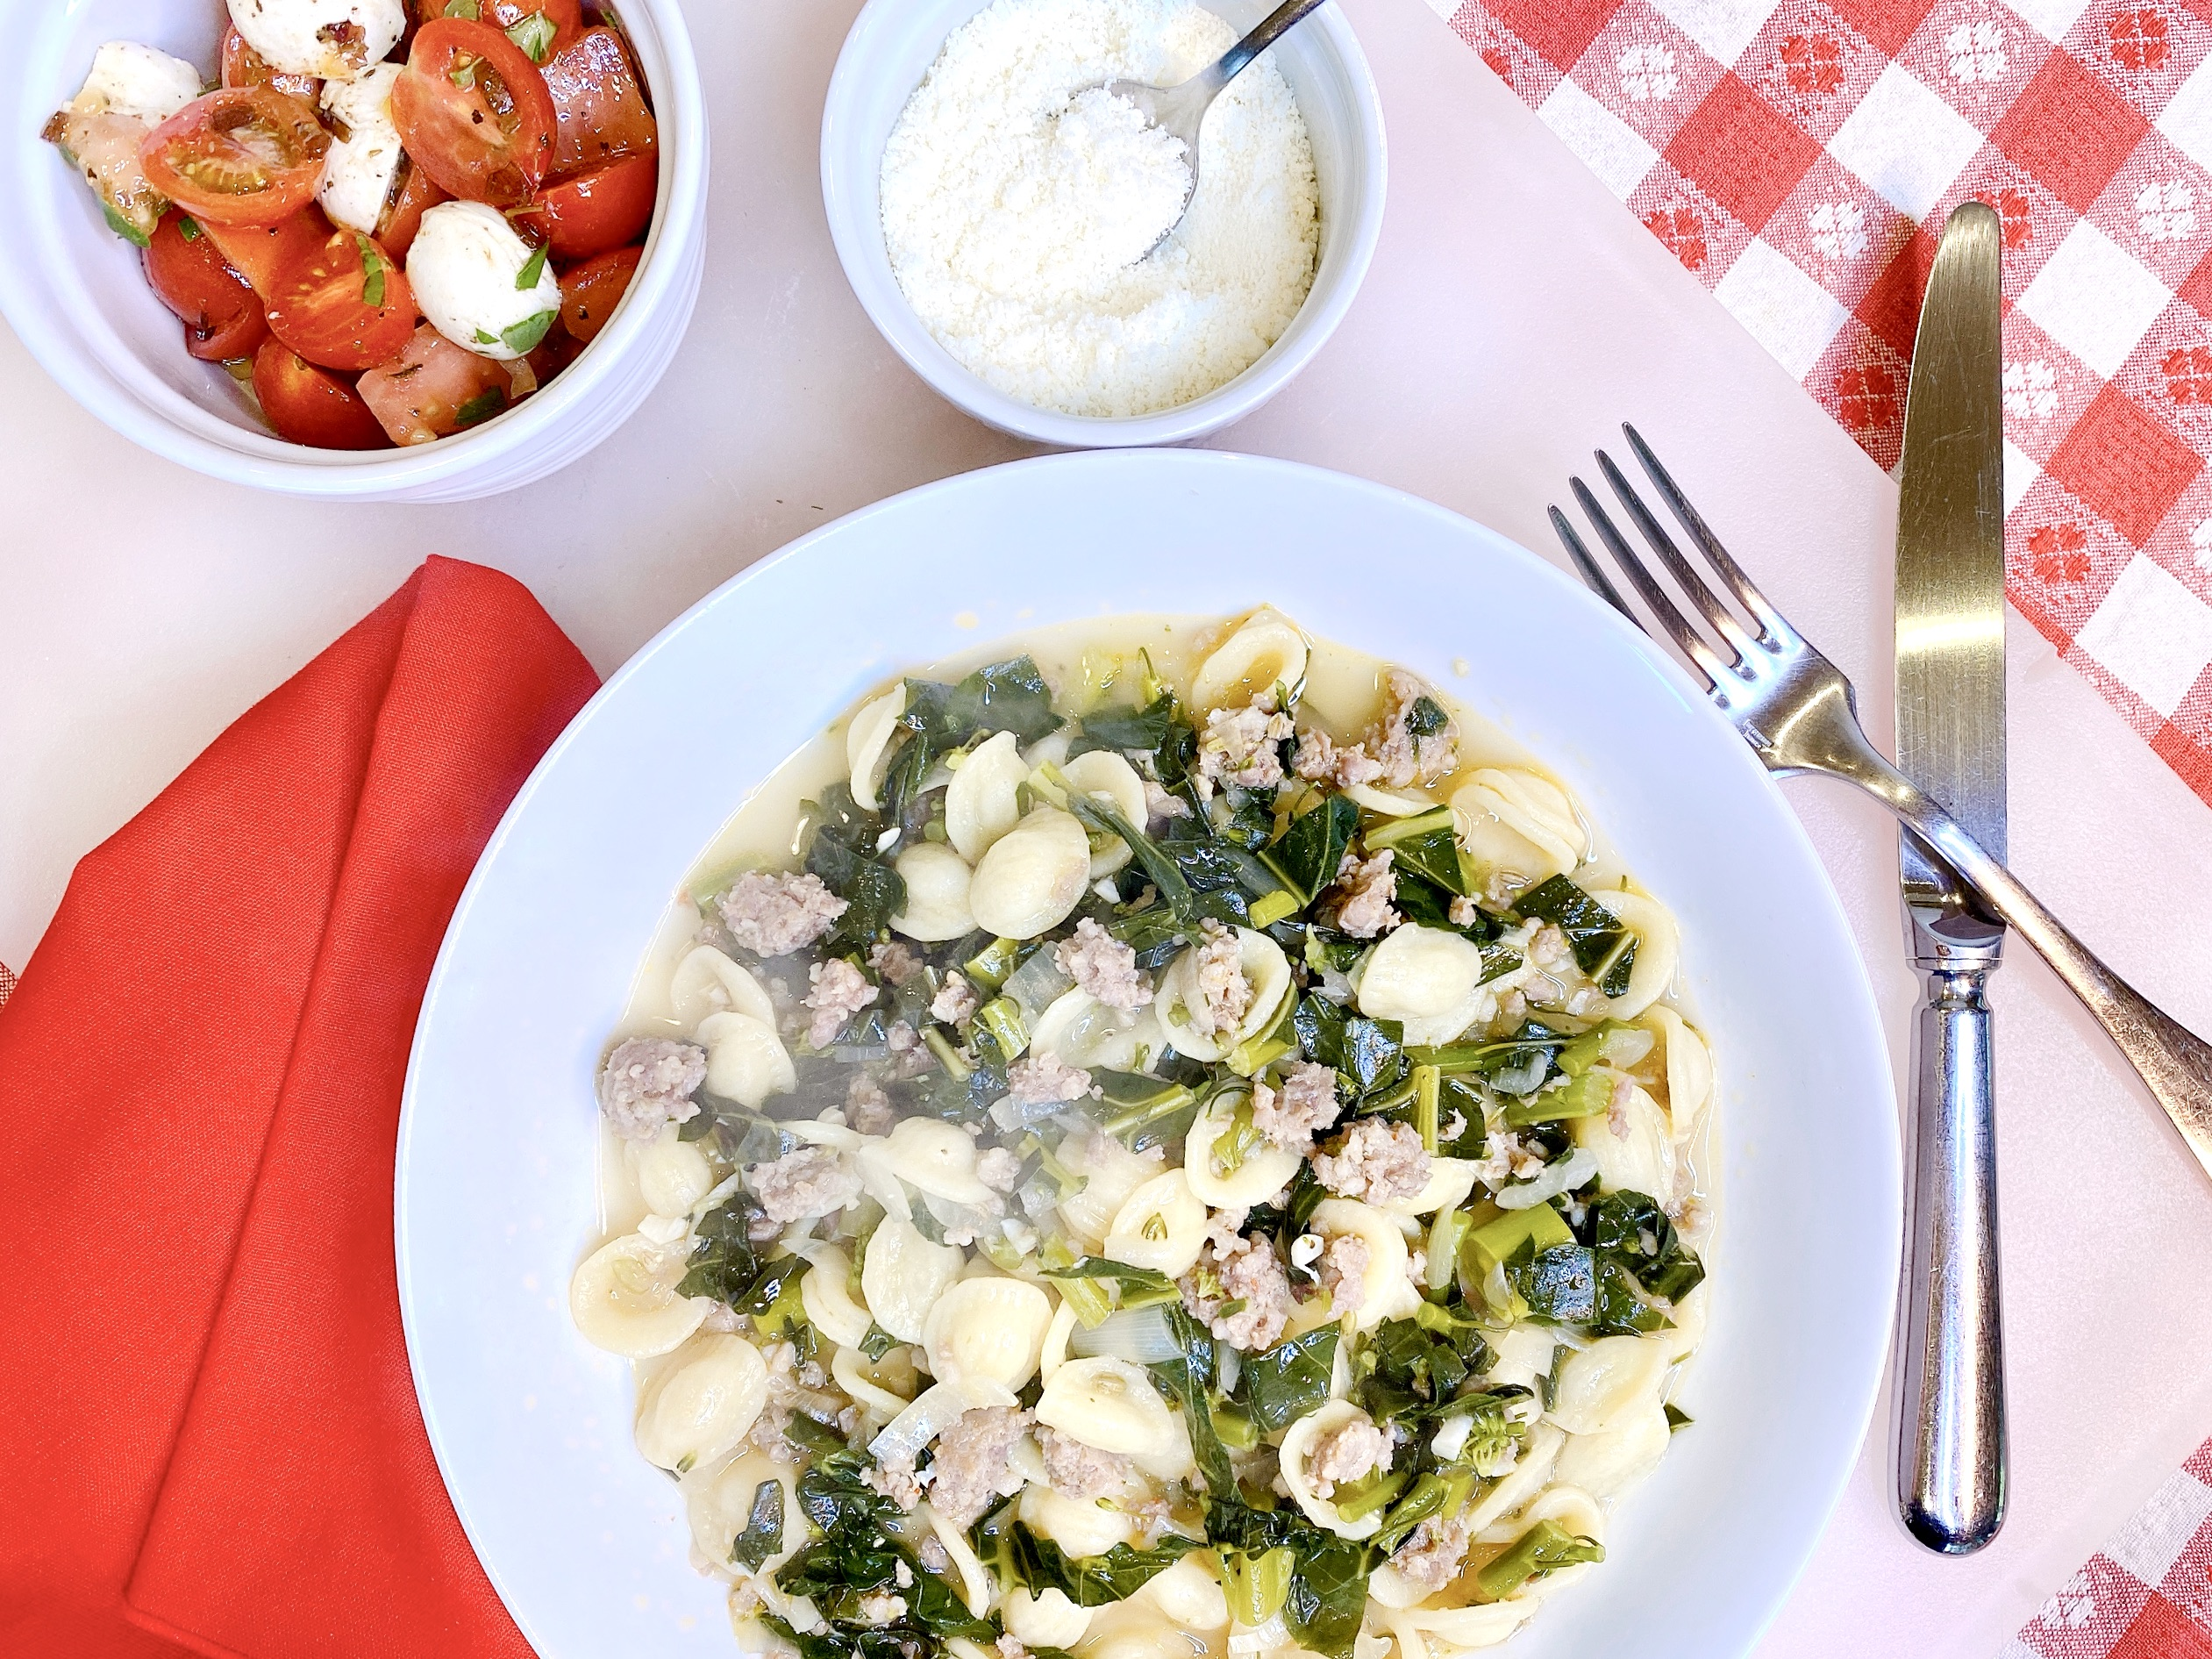 Easy Recipe for Pasta with Italian Sausage and Broccoli Rabe